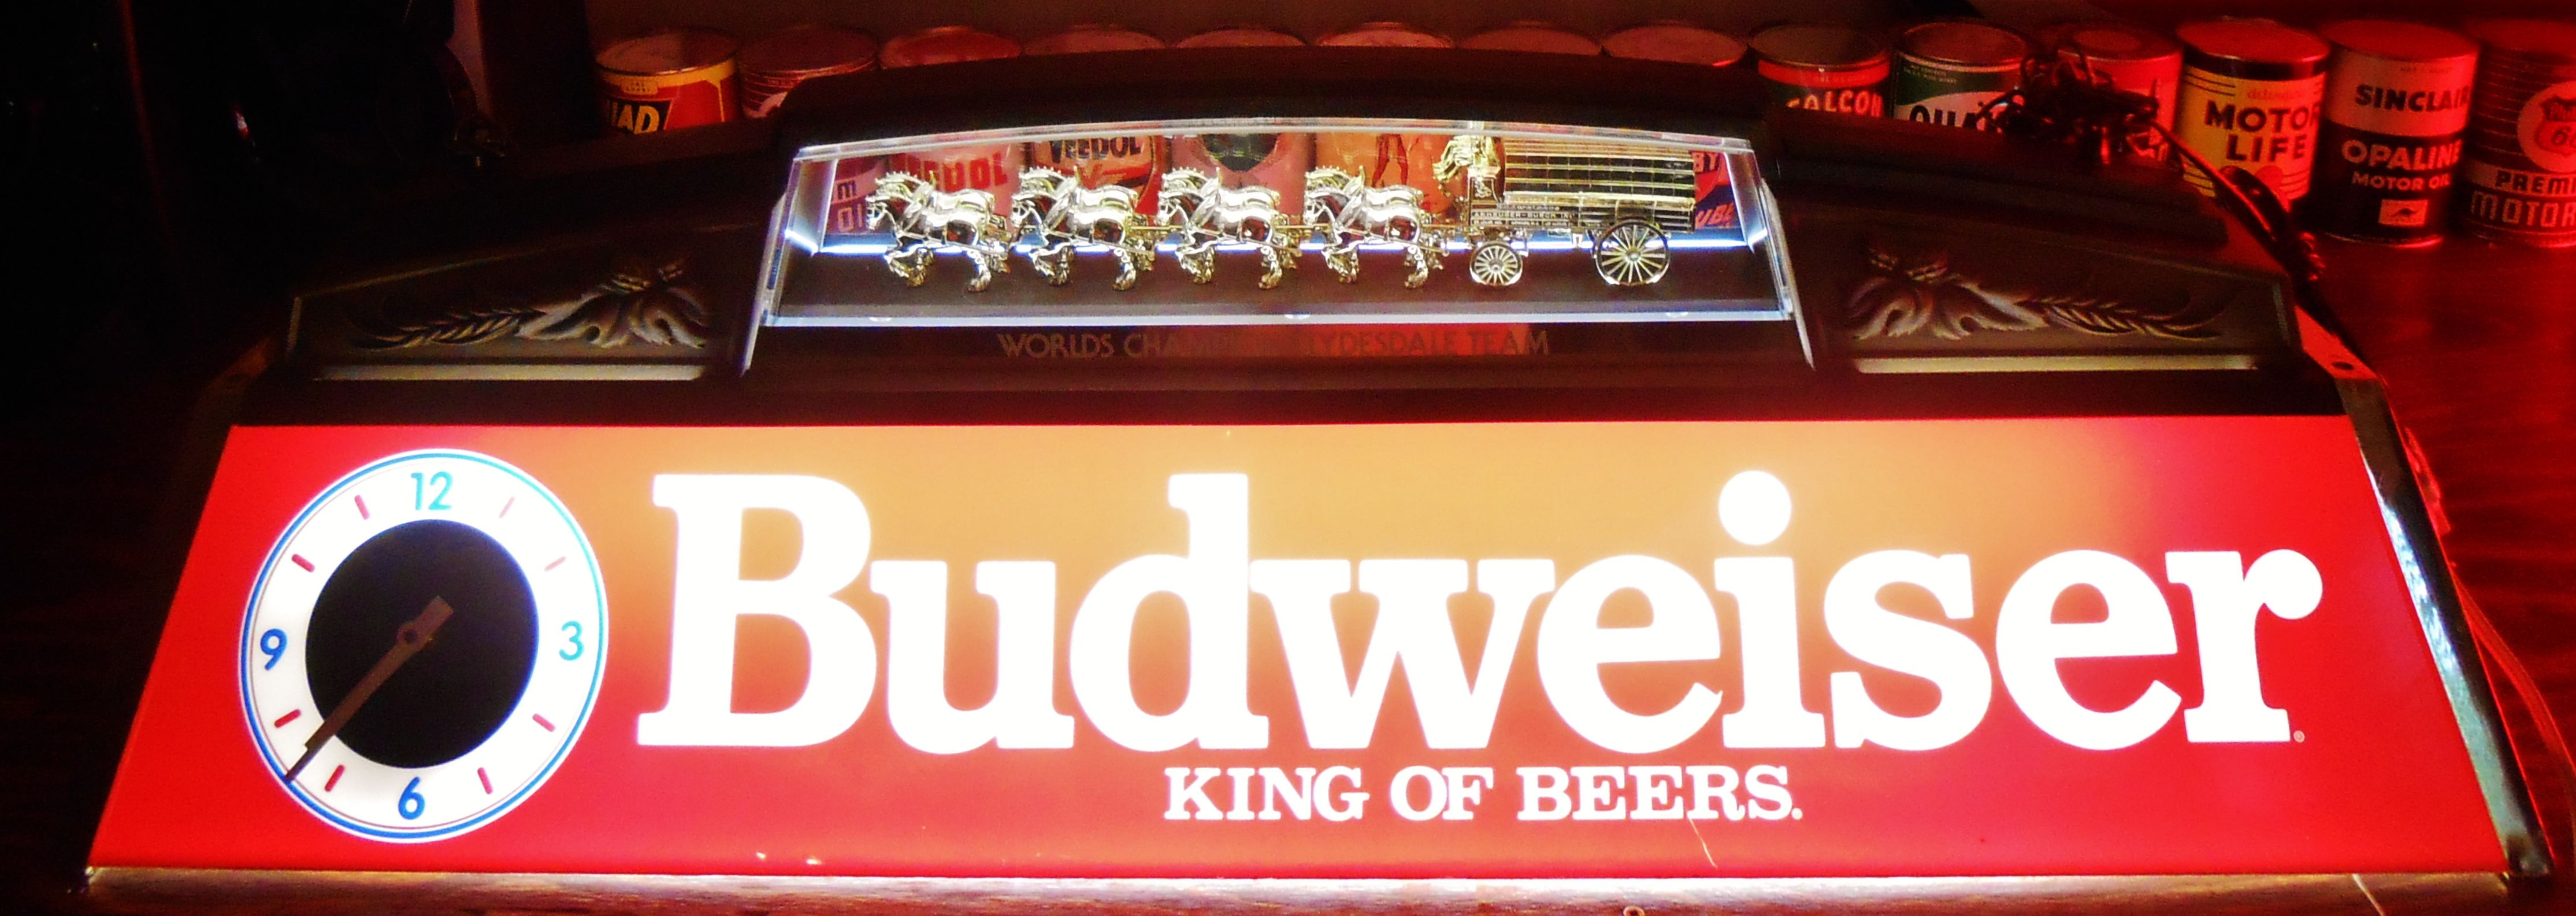 Rare BUDWEISER KING OF BEERS CLYDESDALE WAGON TEAM LIGHTED POOL - Budweiser clydesdale pool table light